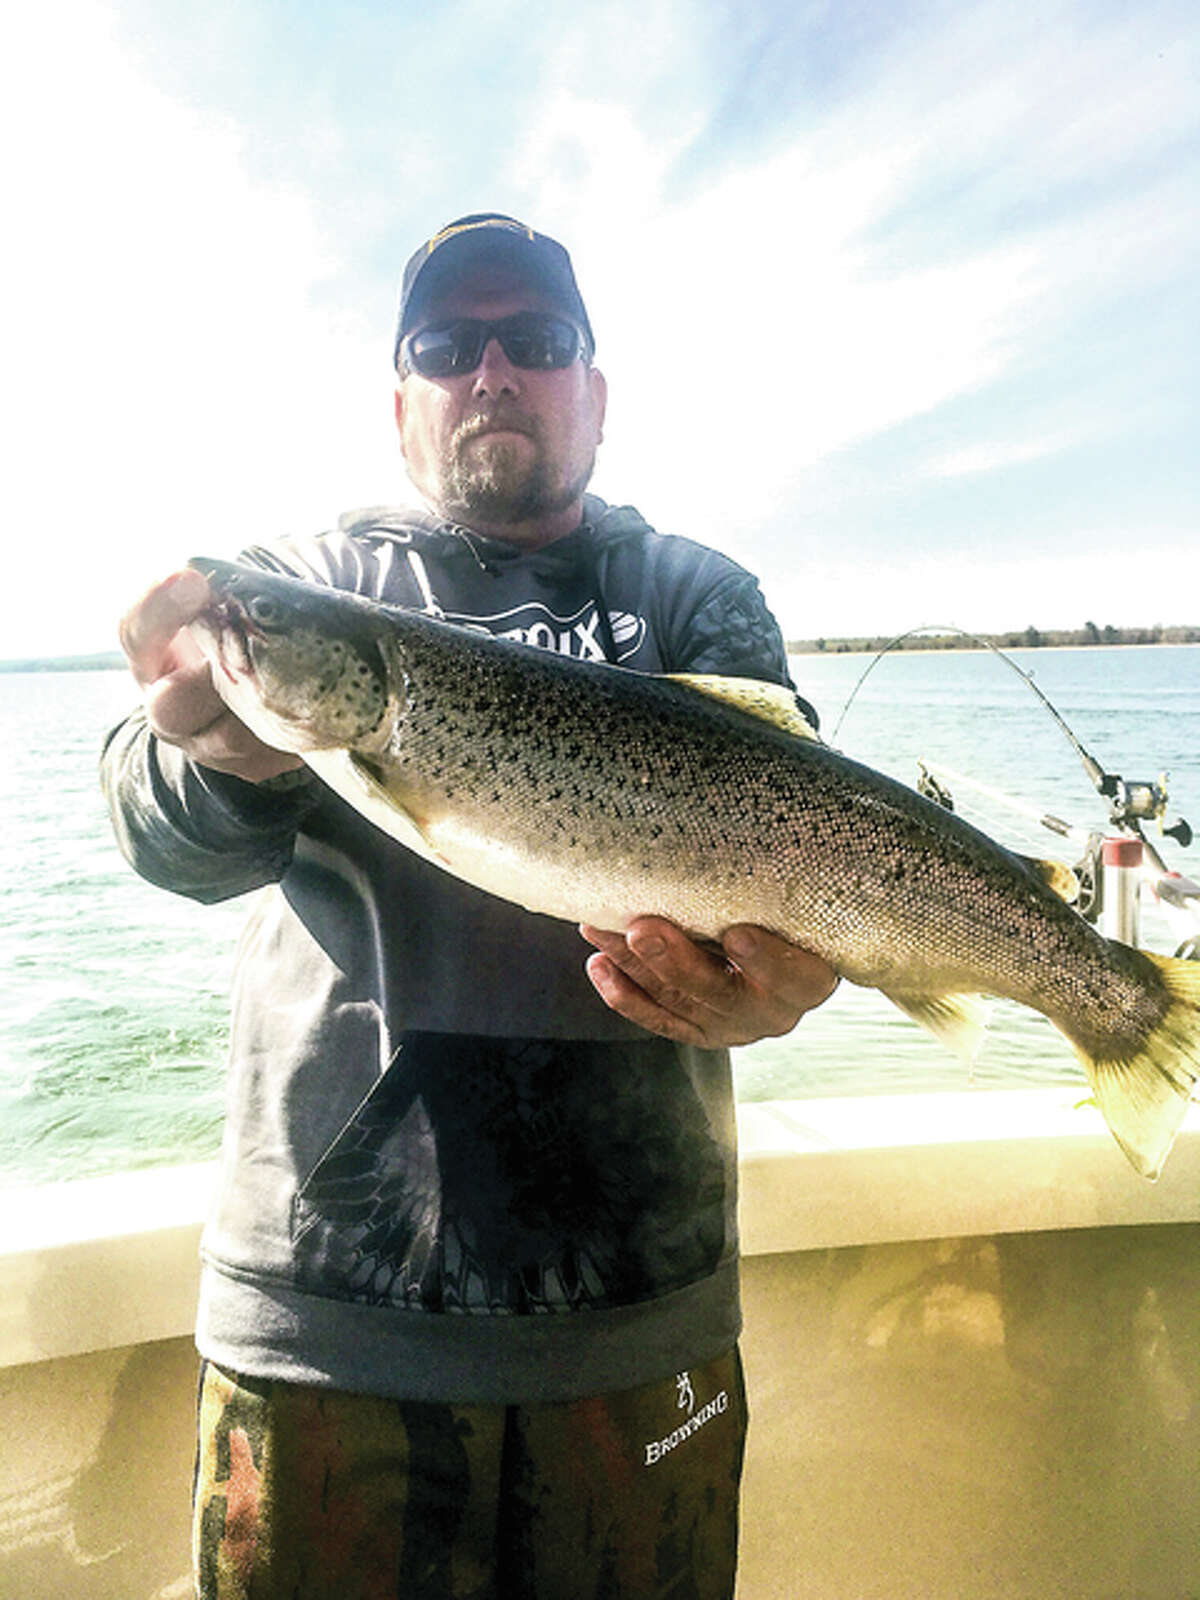 Association of Great Lakes Outdoor Writers President Jim Zaleski displays a hefty brown trout caught from Lake Superior.